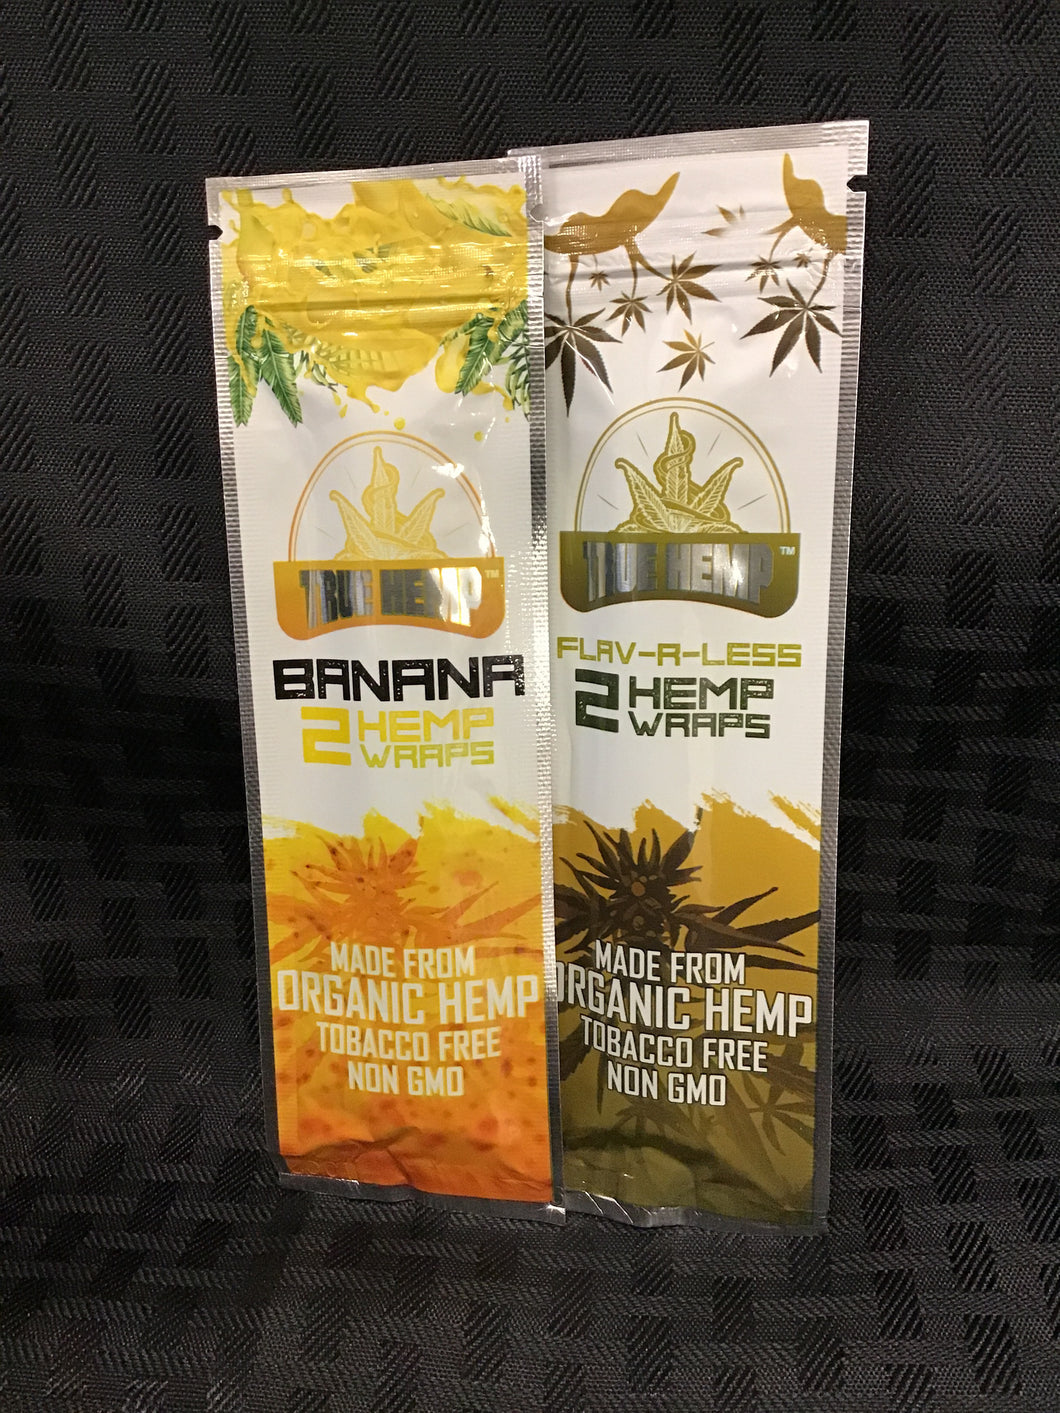 True Hemp - Organic Hemp wraps